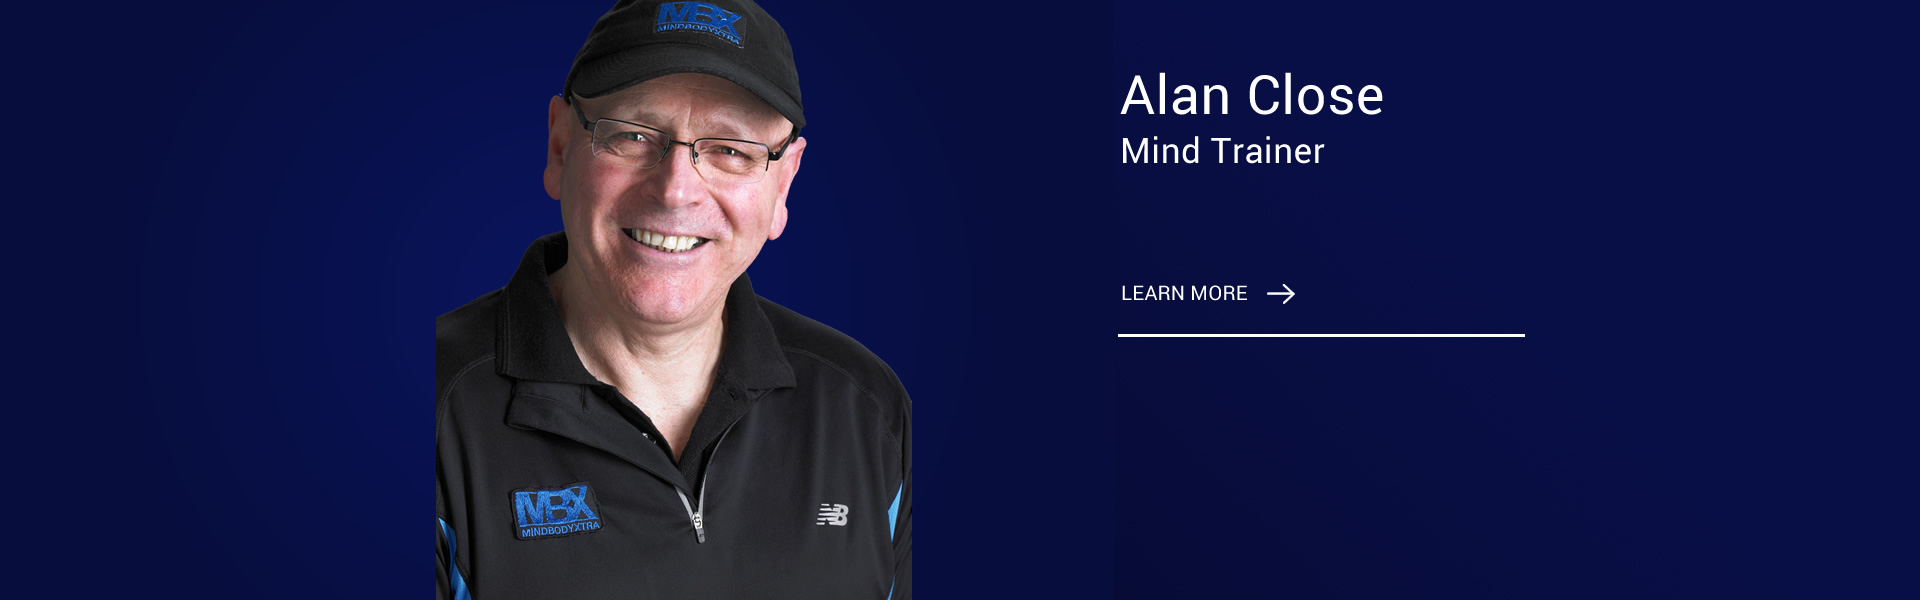 Alan Close - Mind Trainer. Learn More